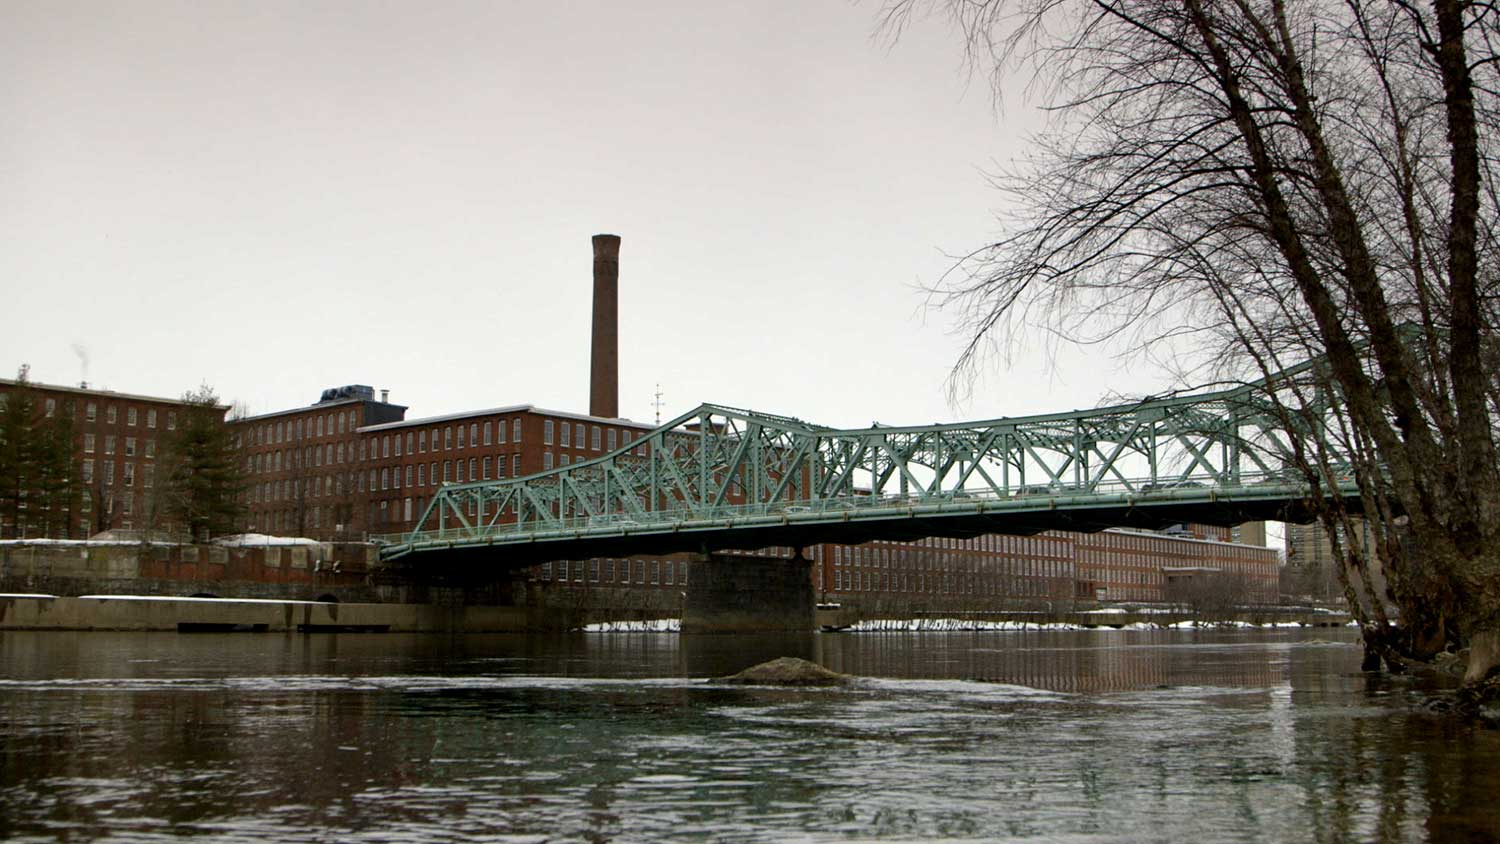 The Merrimack River in Lowell, MA